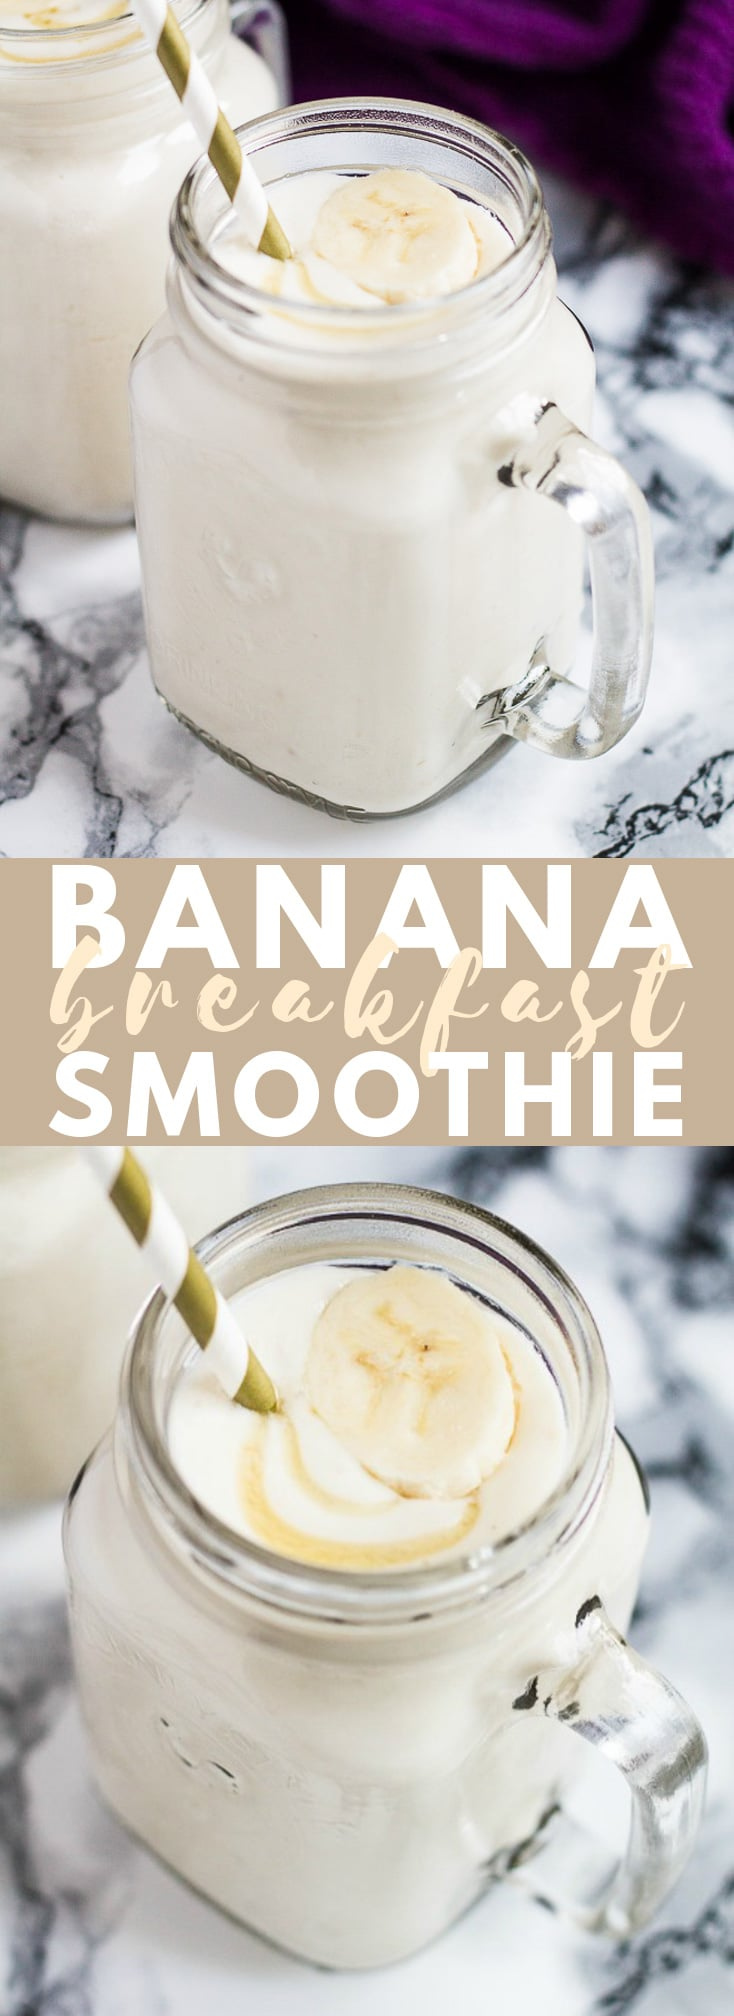 Banana Breakfast Smoothie- Deliciously thick and creamy banana smoothie, that is super healthy and made from only 4 ingredients - the perfect smoothie for breakfast!